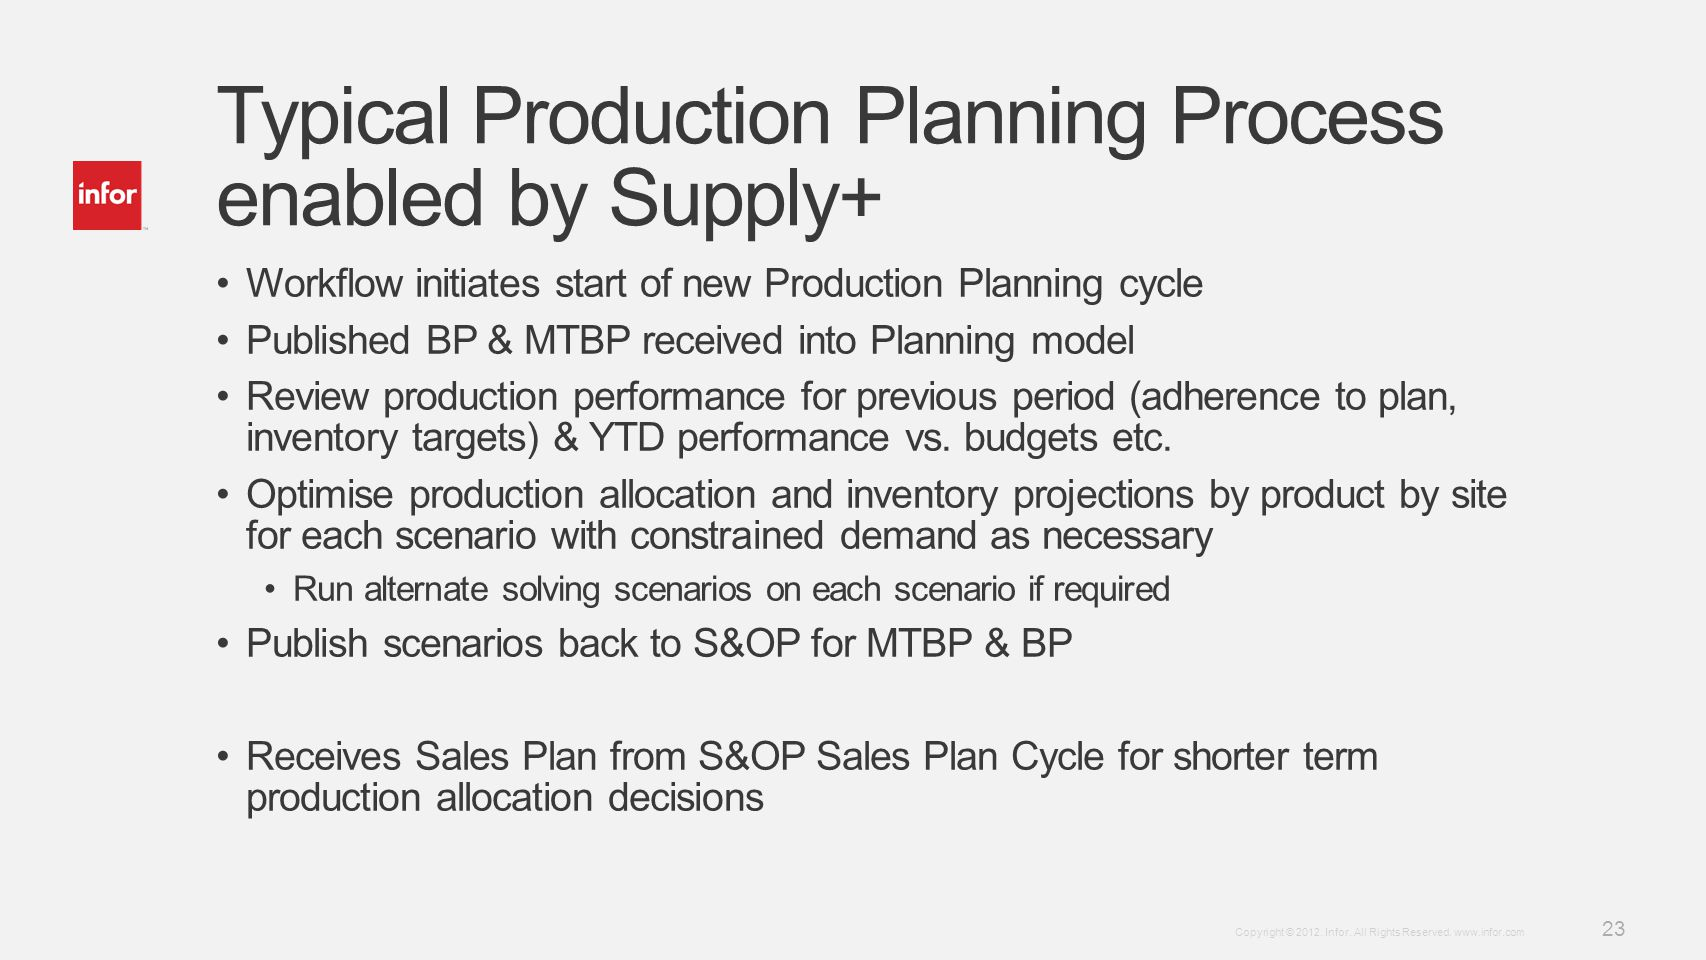 Template v4 September 27, 2012 23 Copyright © 2012. Infor. All Rights Reserved. www.infor.com Typical Production Planning Process enabled by Supply+ W